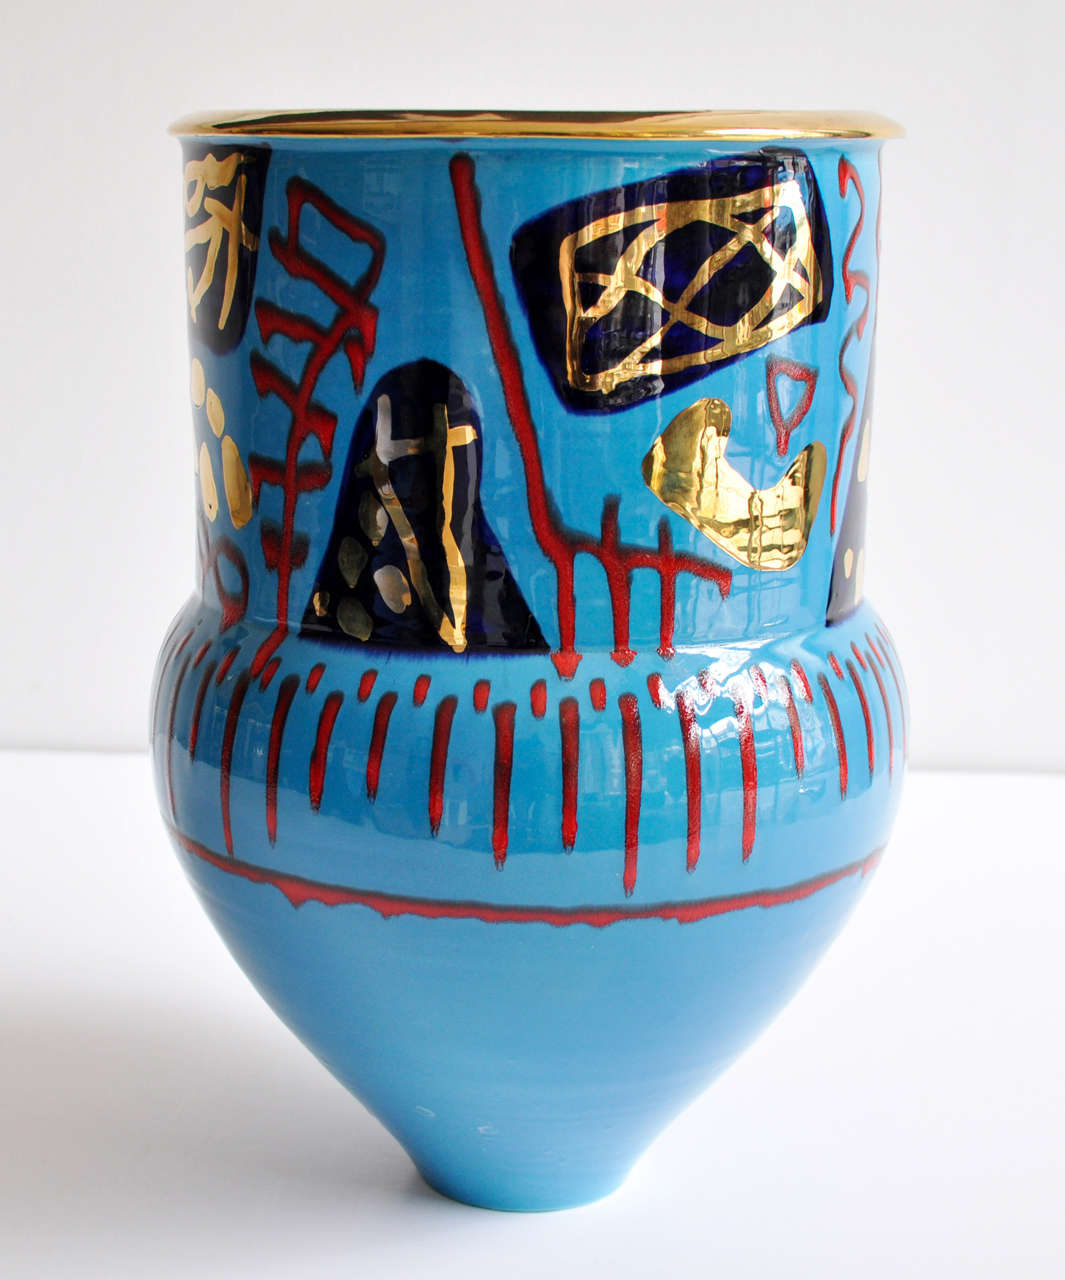 20th Century 1980s Monumental Ceramic Vessel by Anna Silver For Sale